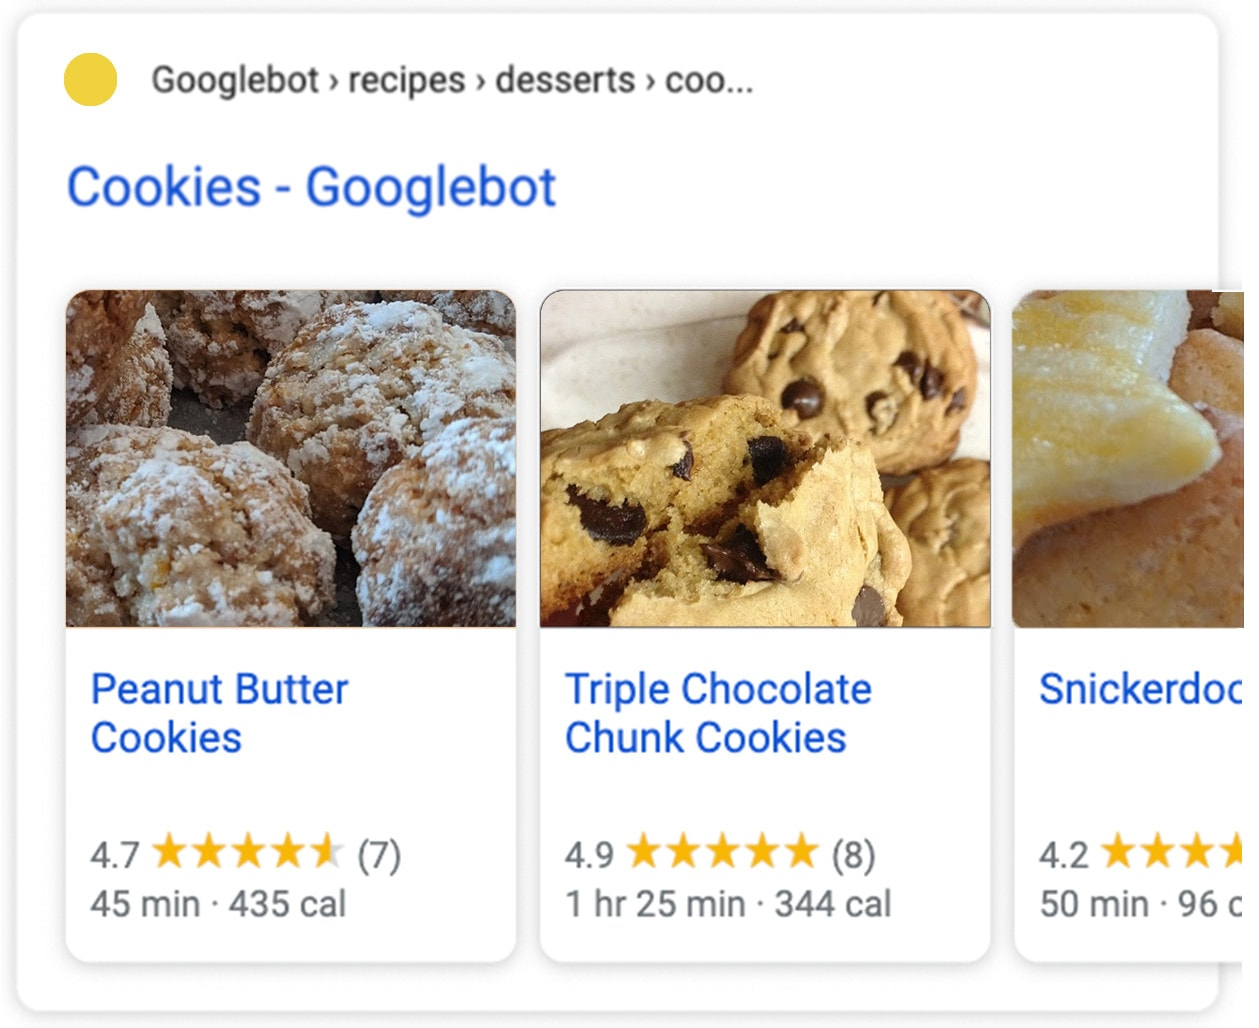 A rich snippet showing images and ratings for a cookie recipe.